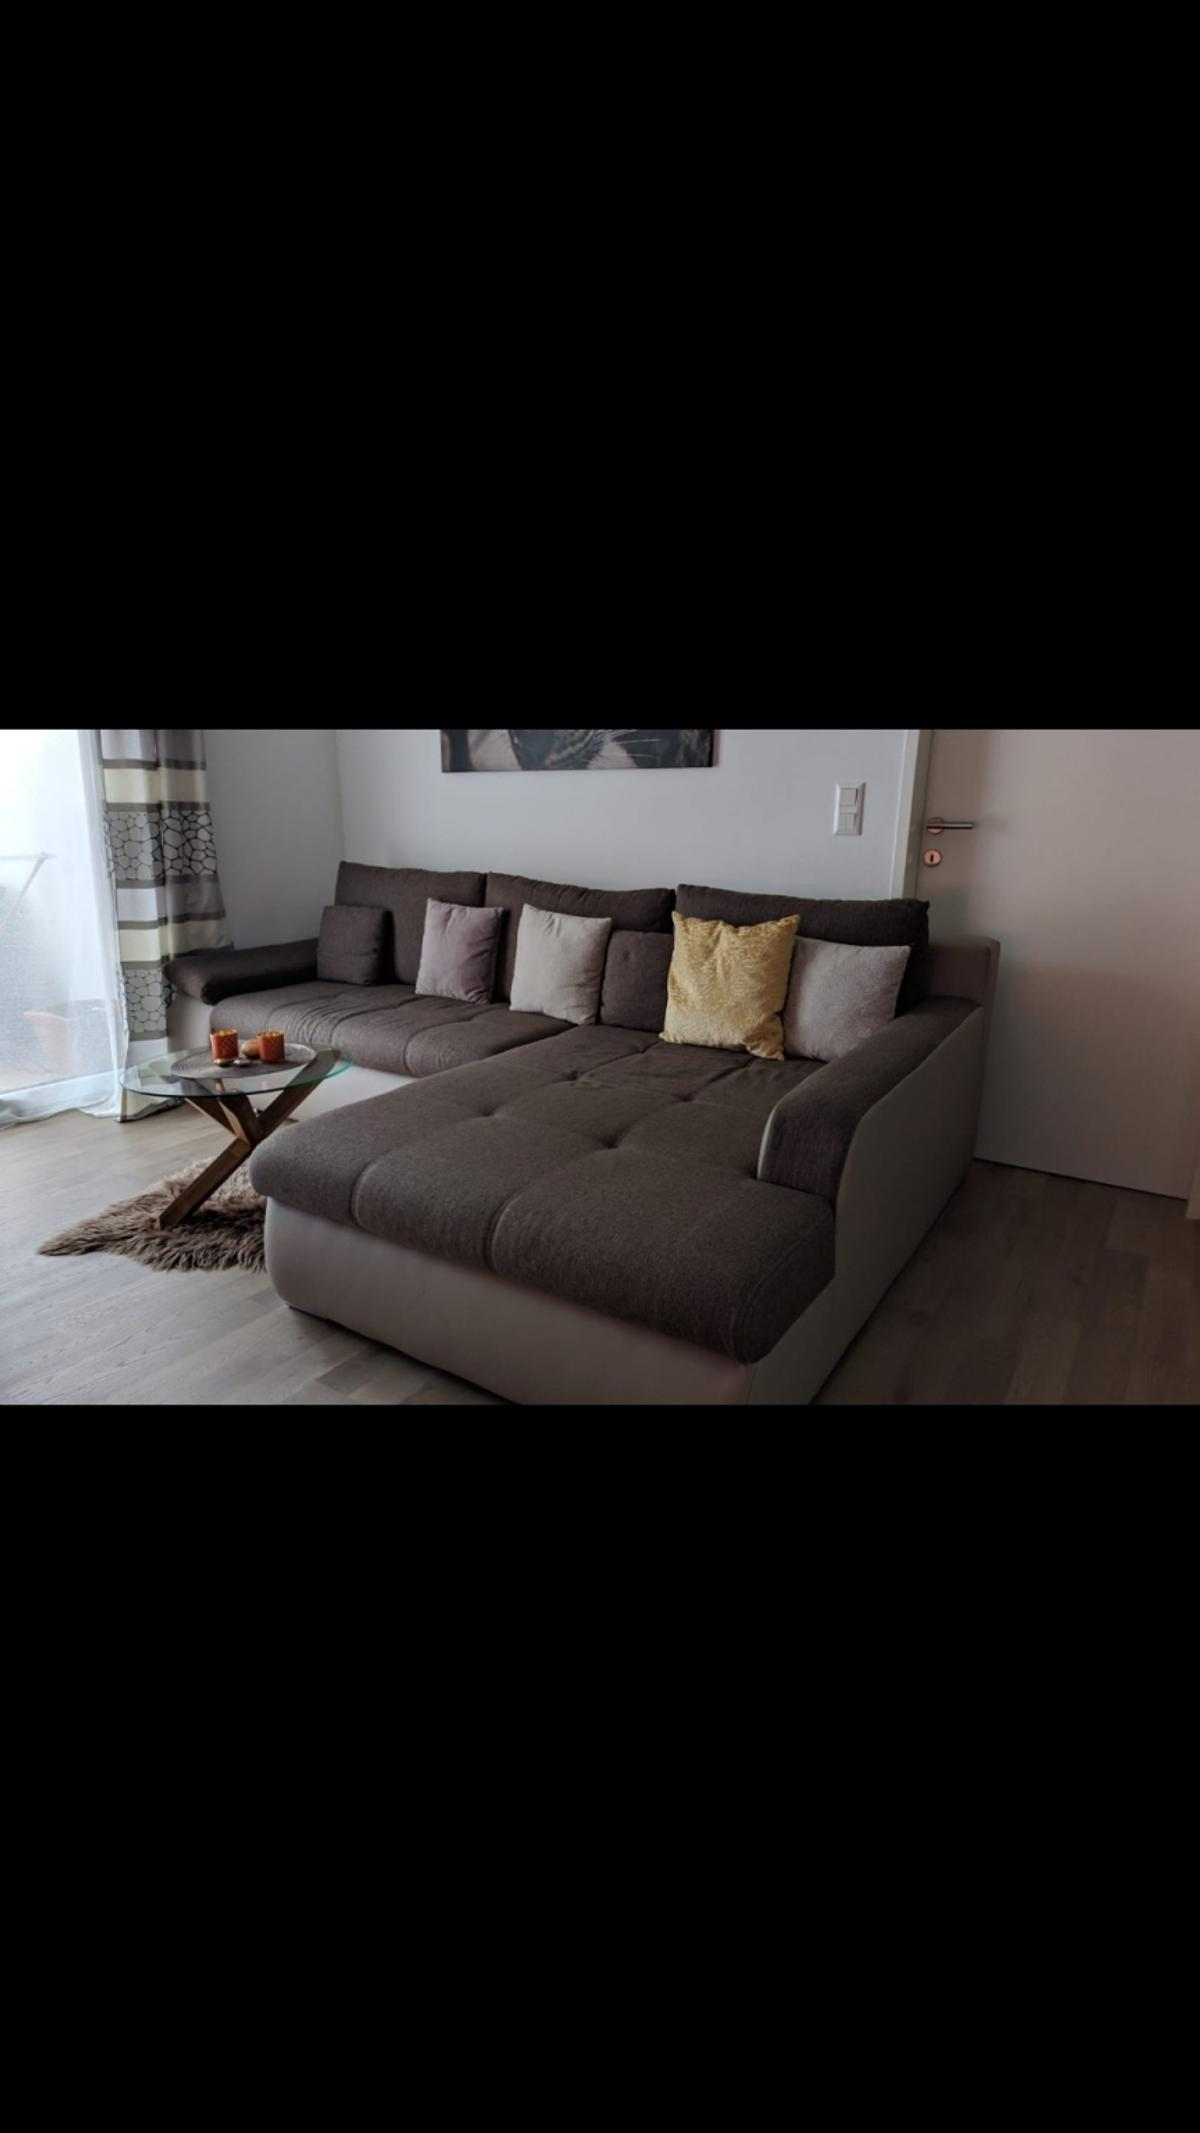 Weko Couch Couch Weko In 6330 Kufstein For €400.00 For Sale | Shpock